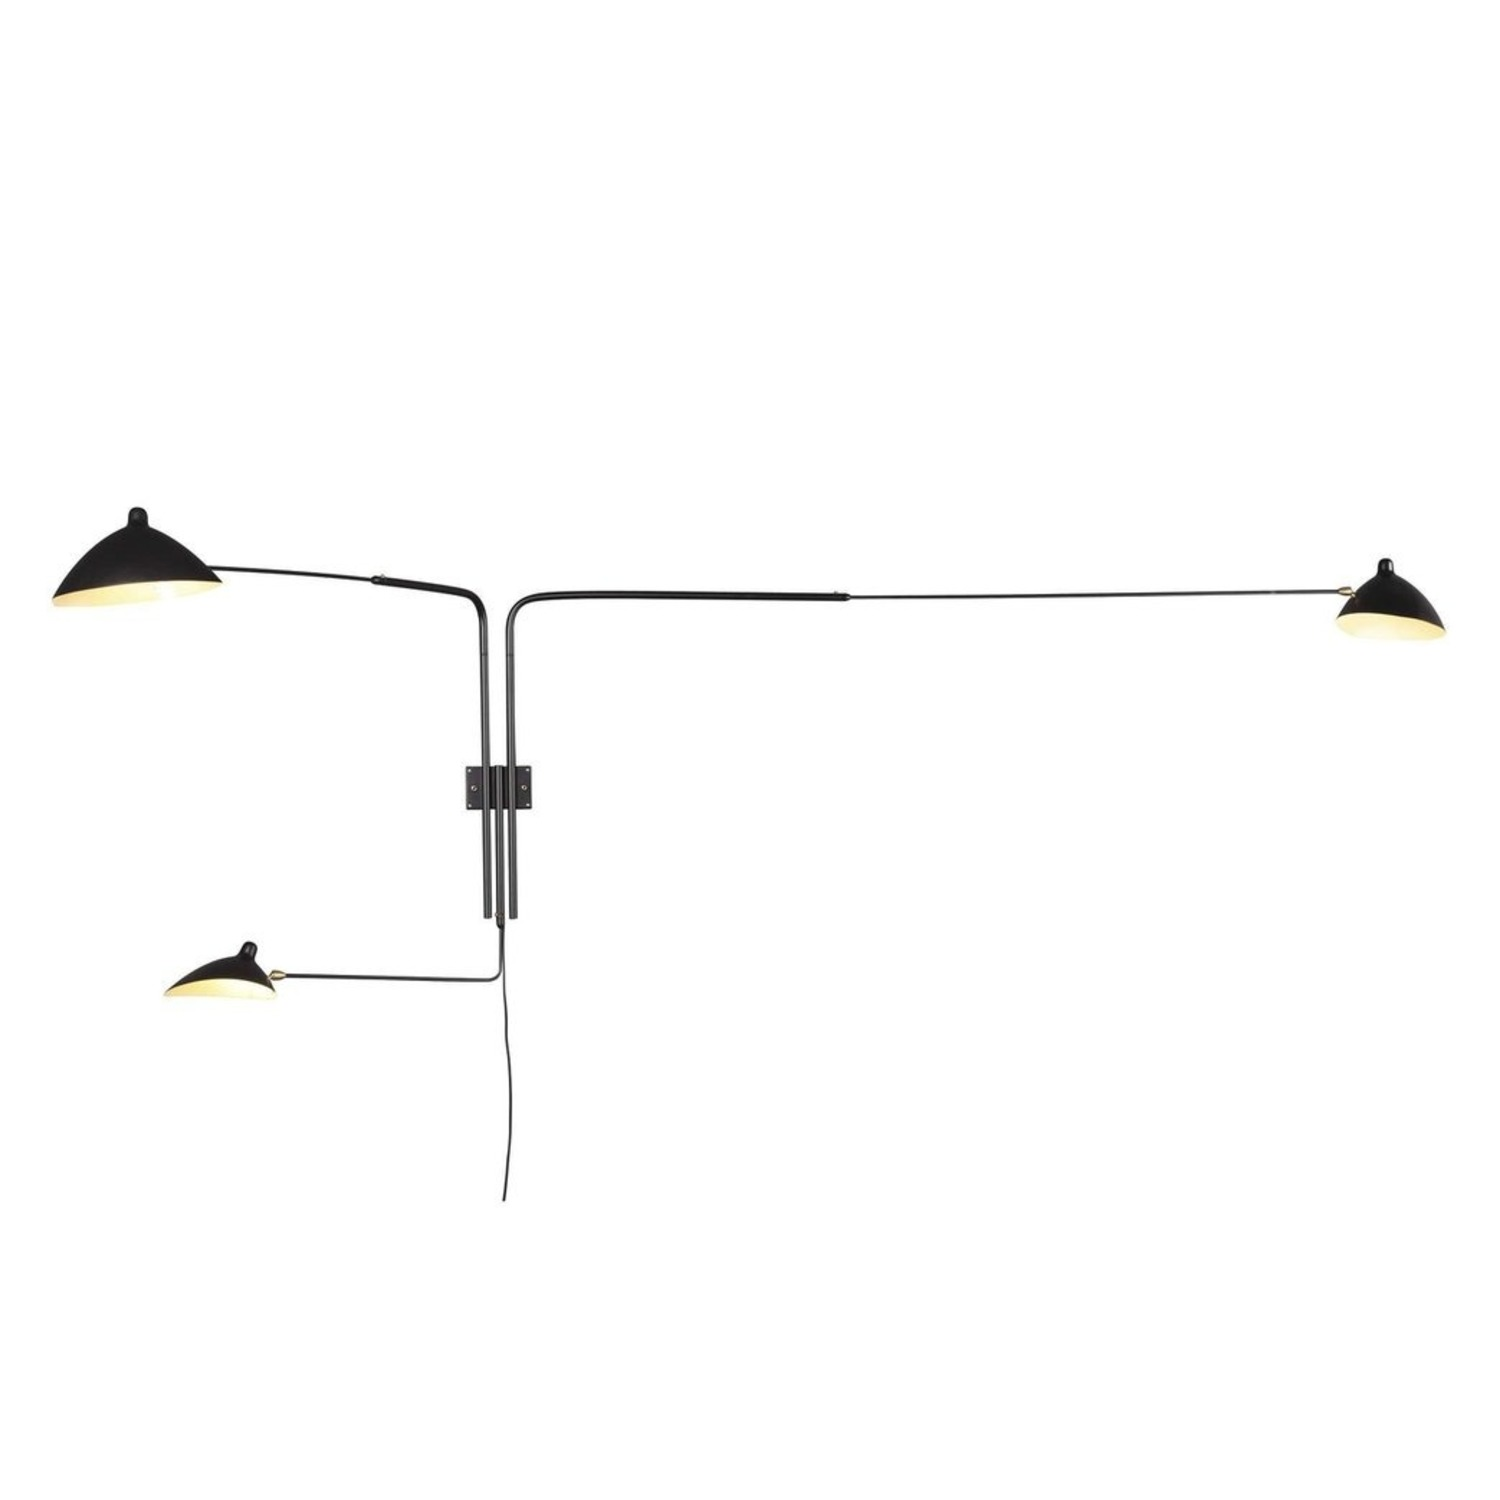 Midcentury Modern Rotating Wall Sconce - image-1